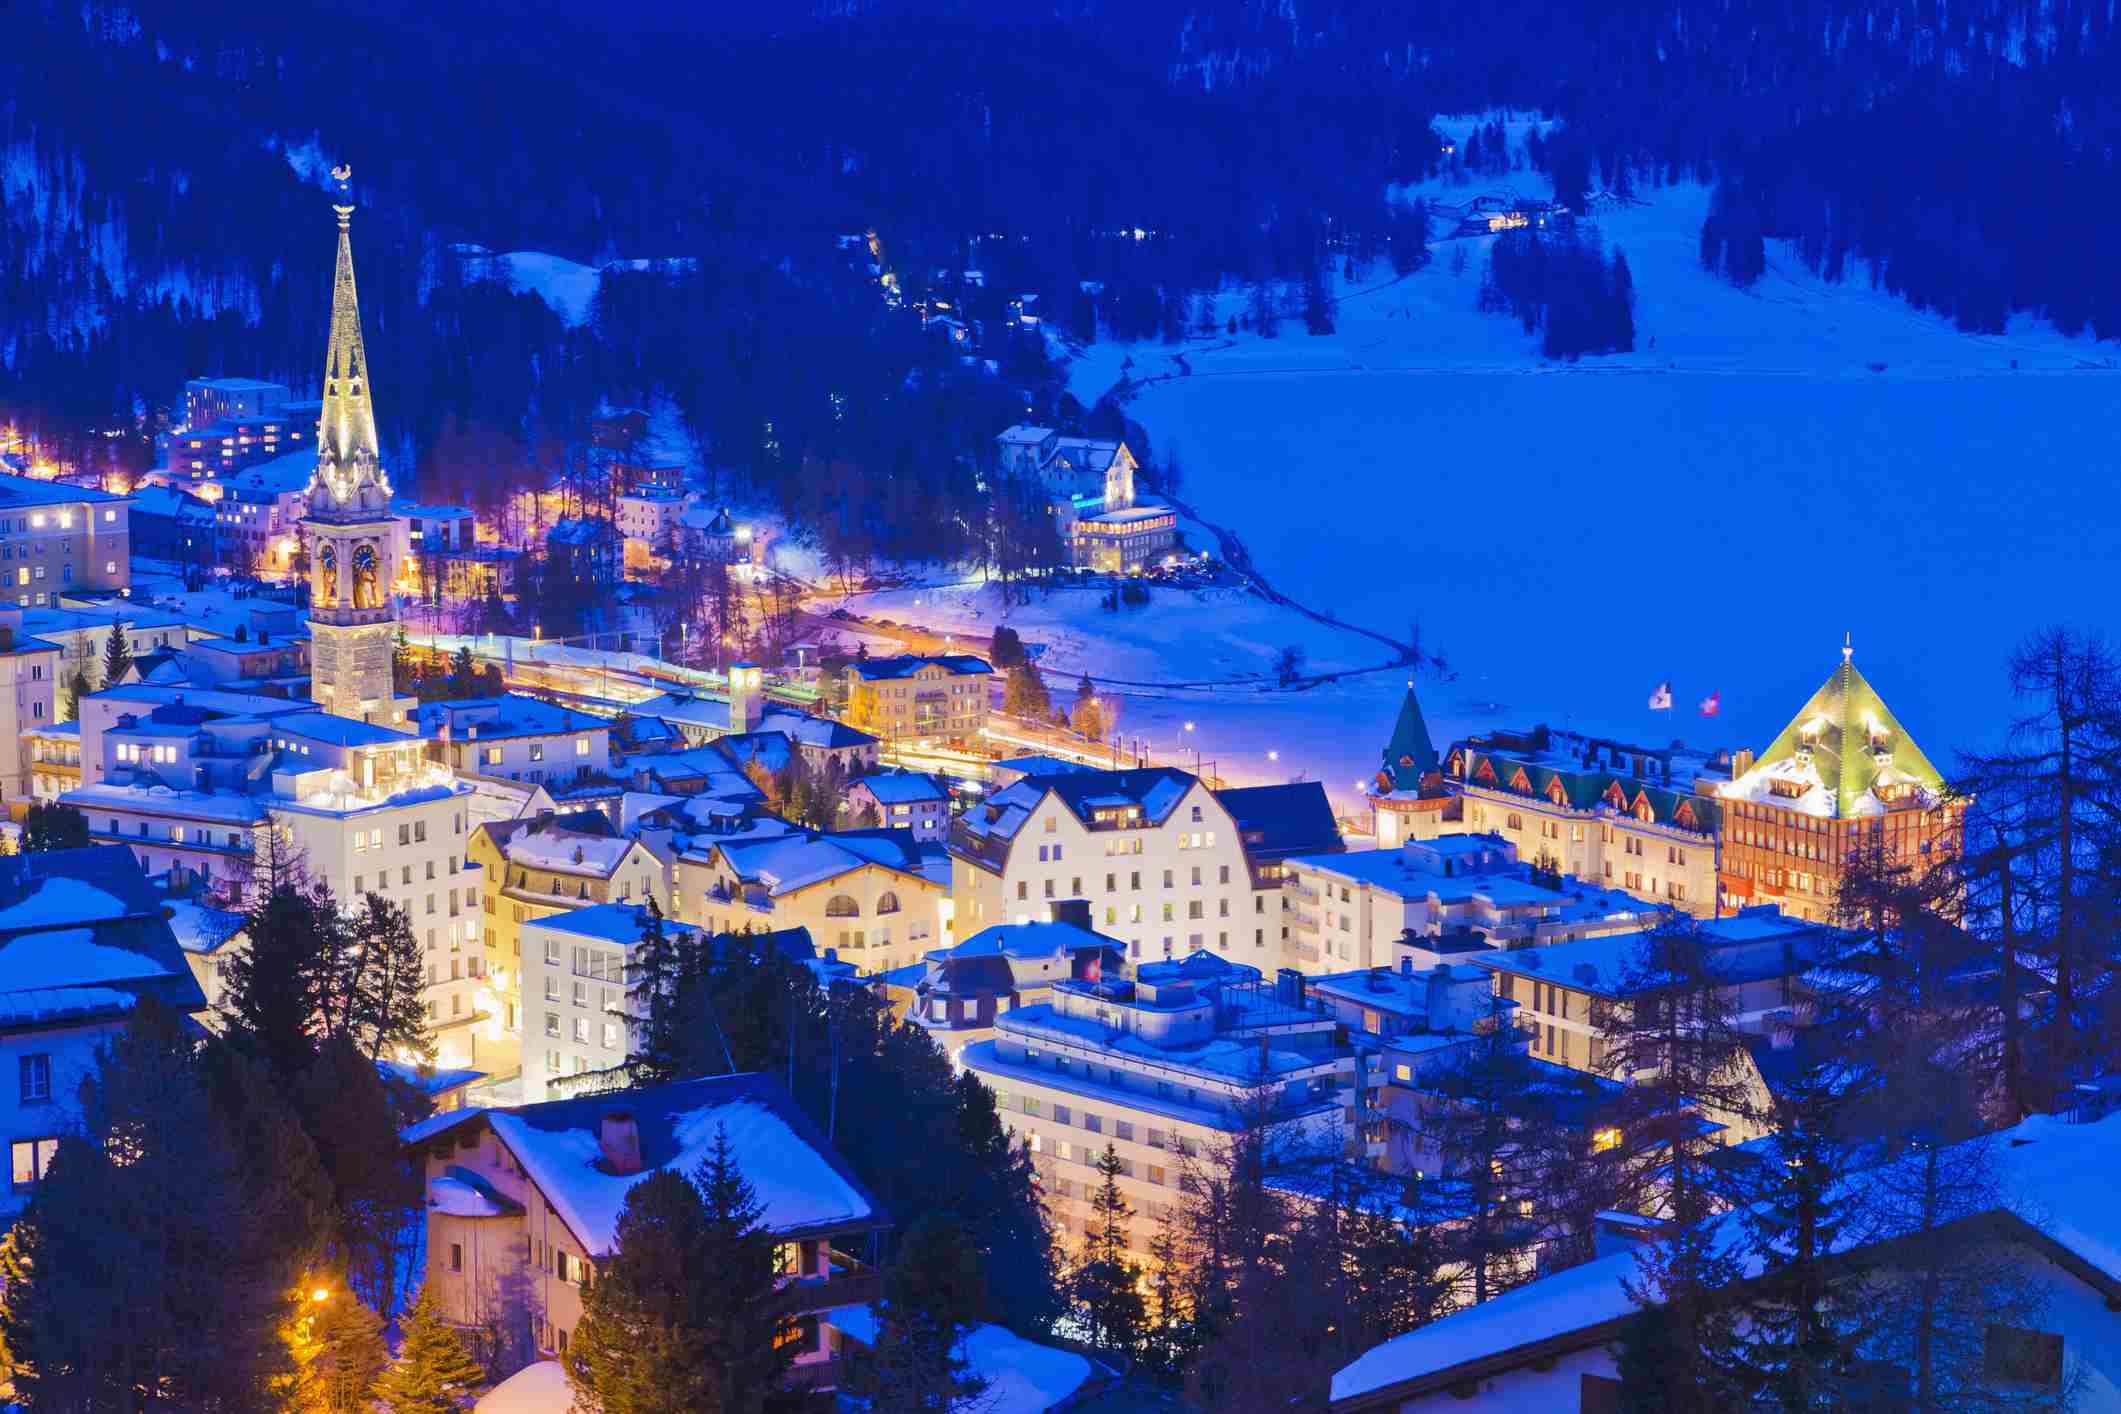 Aerial view of St. Moritz townscape